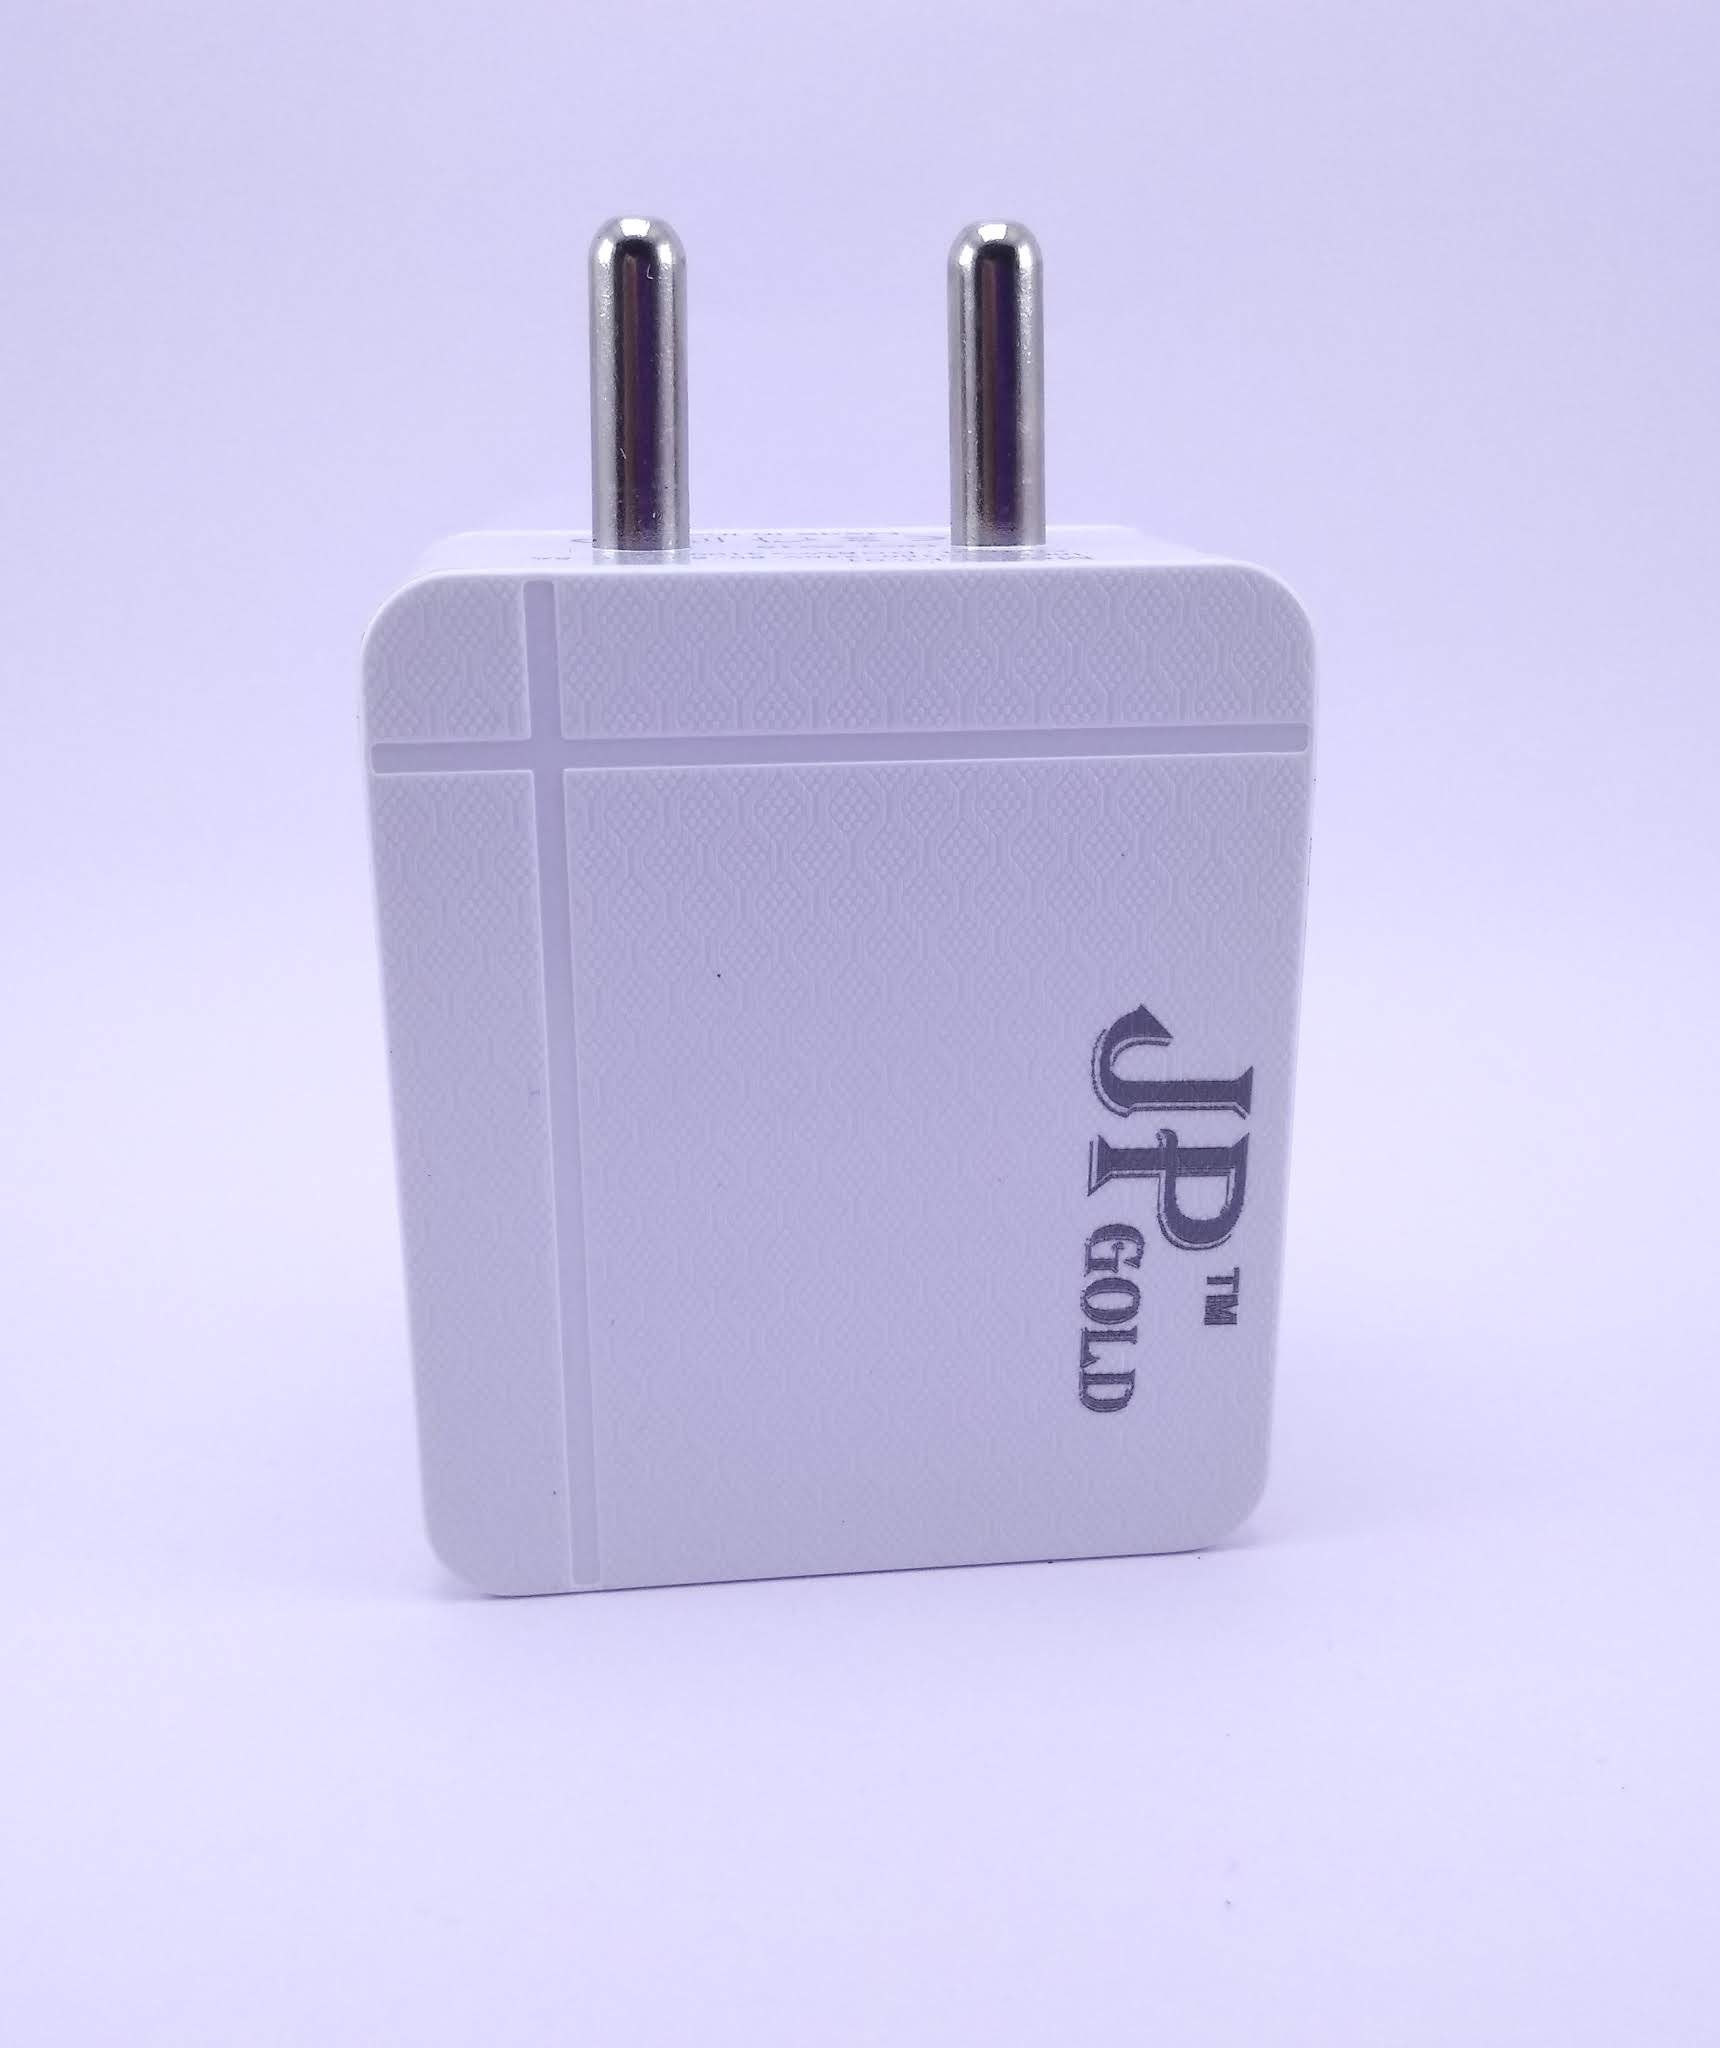 LT-01 Quick Charger and USB Data Cable